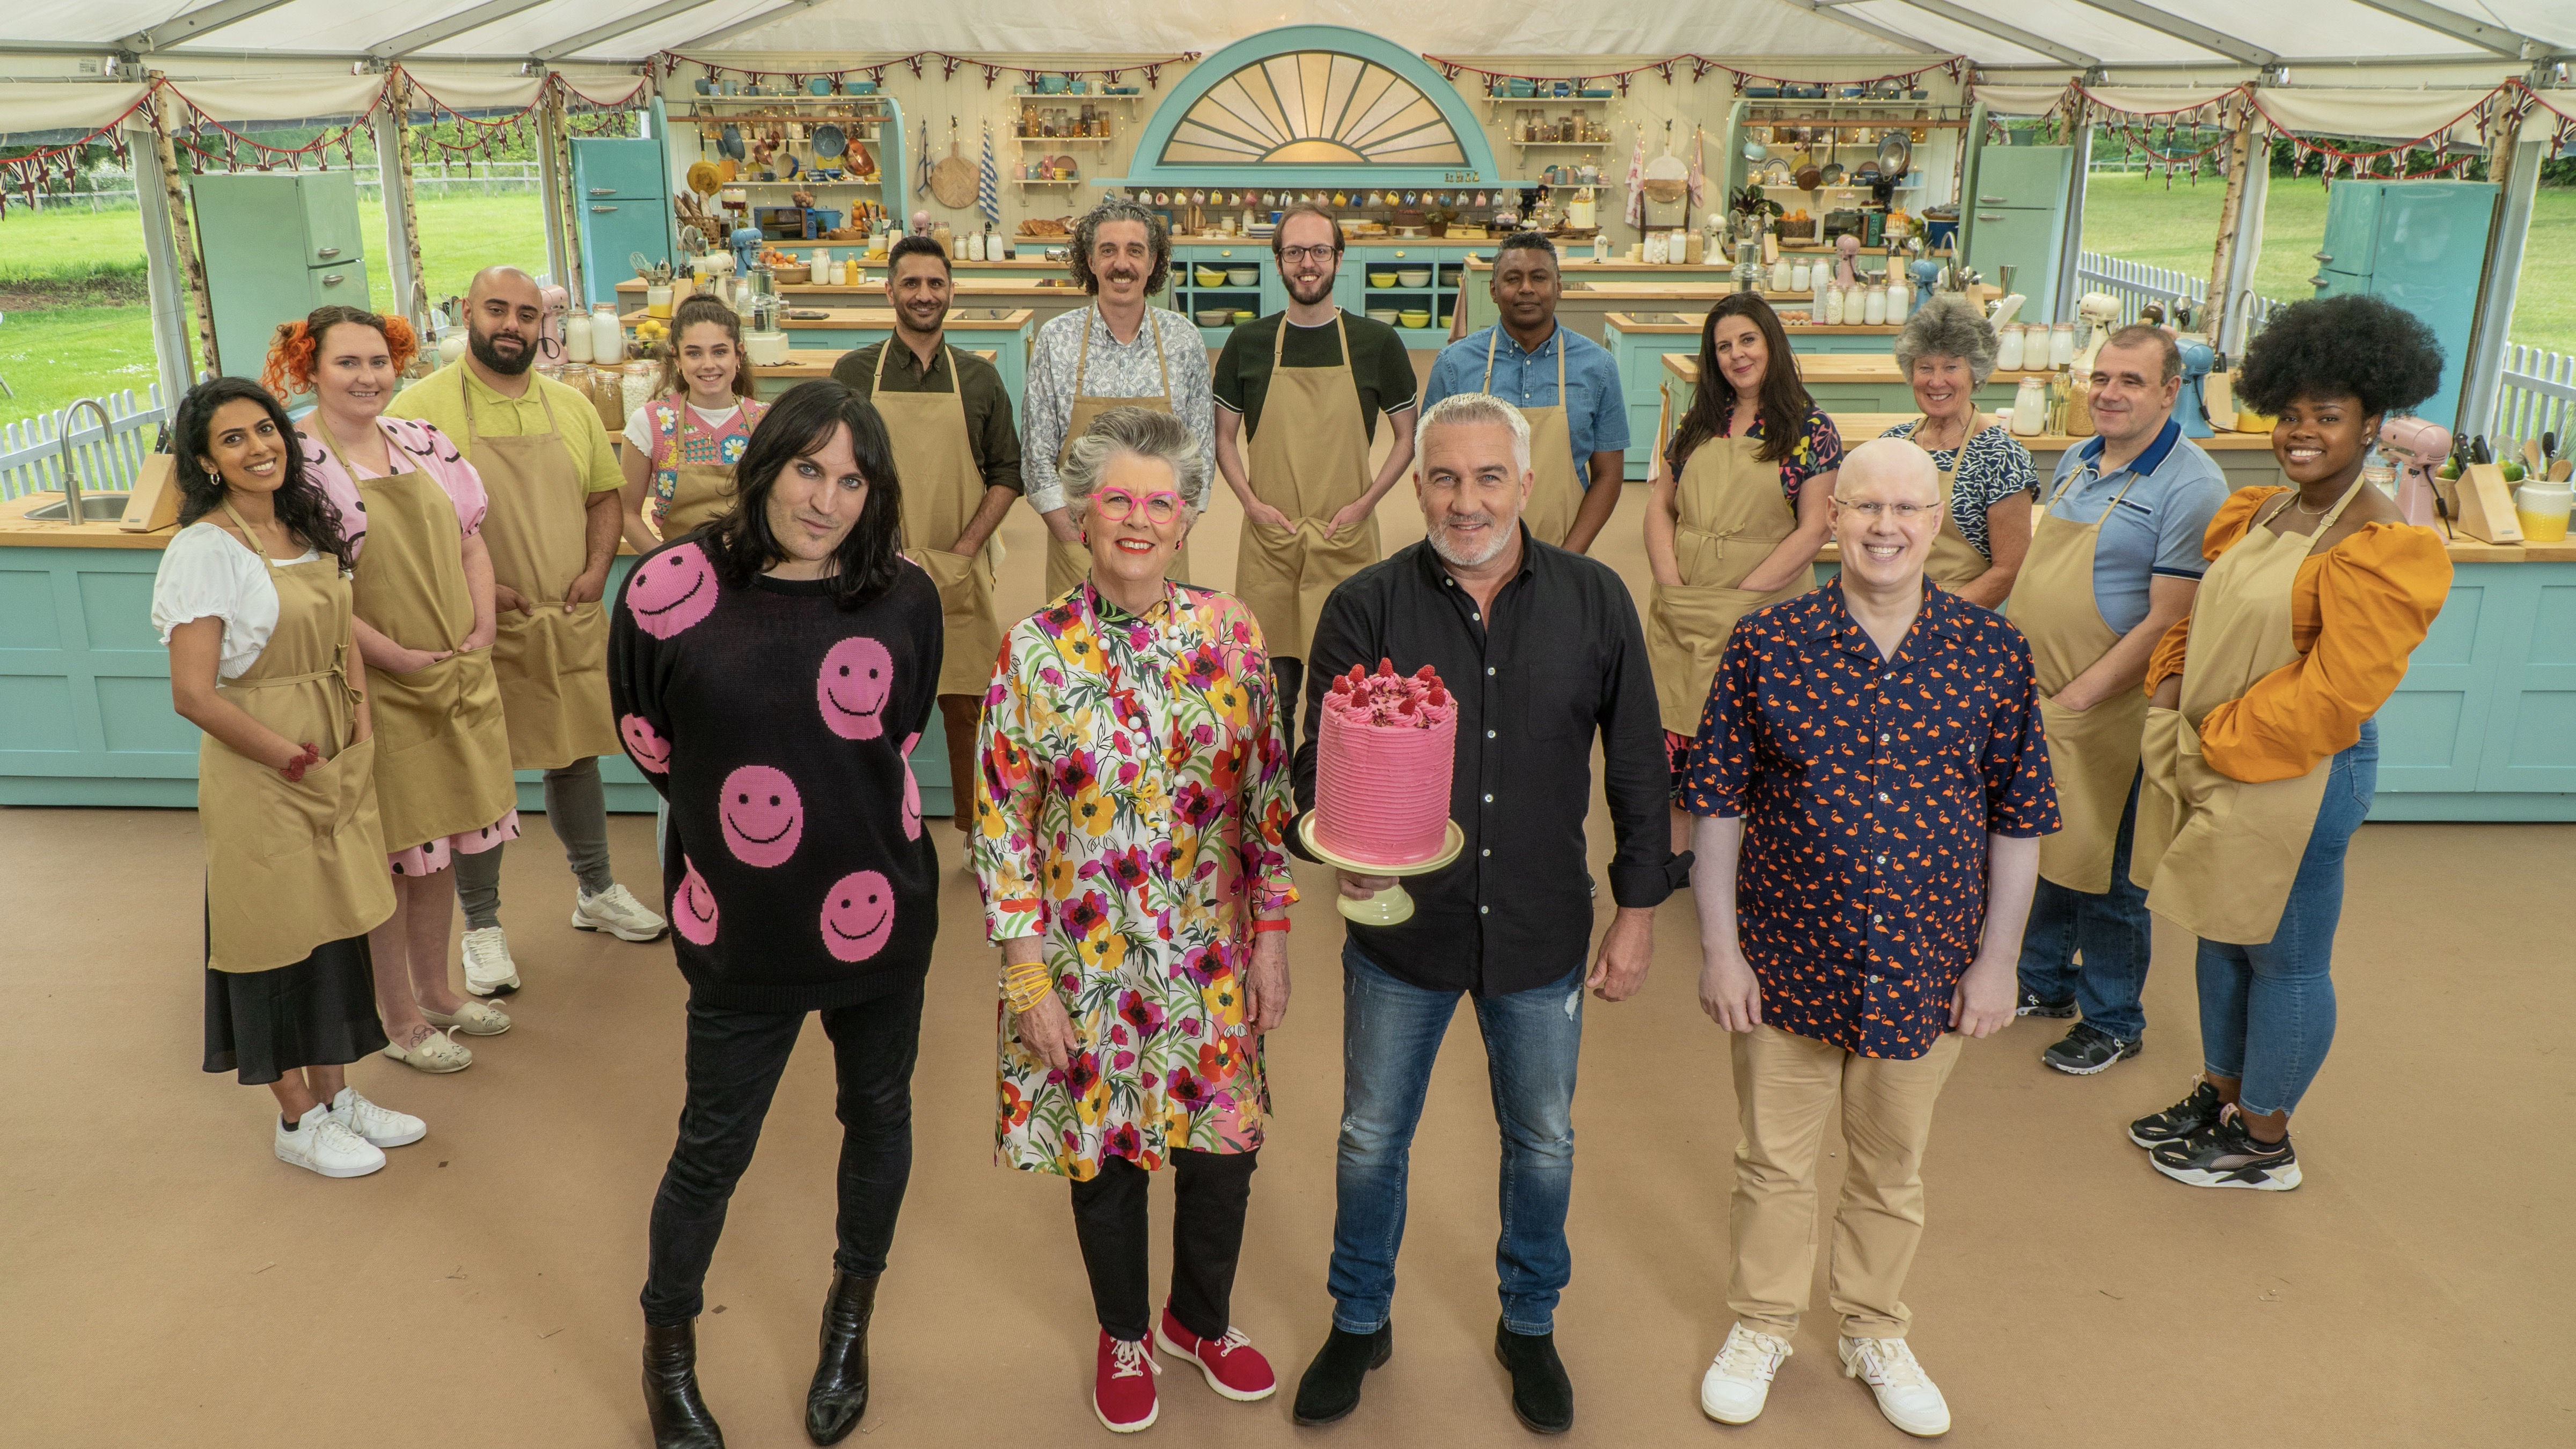 The Great British Bake Off hosts, judges and bakers.